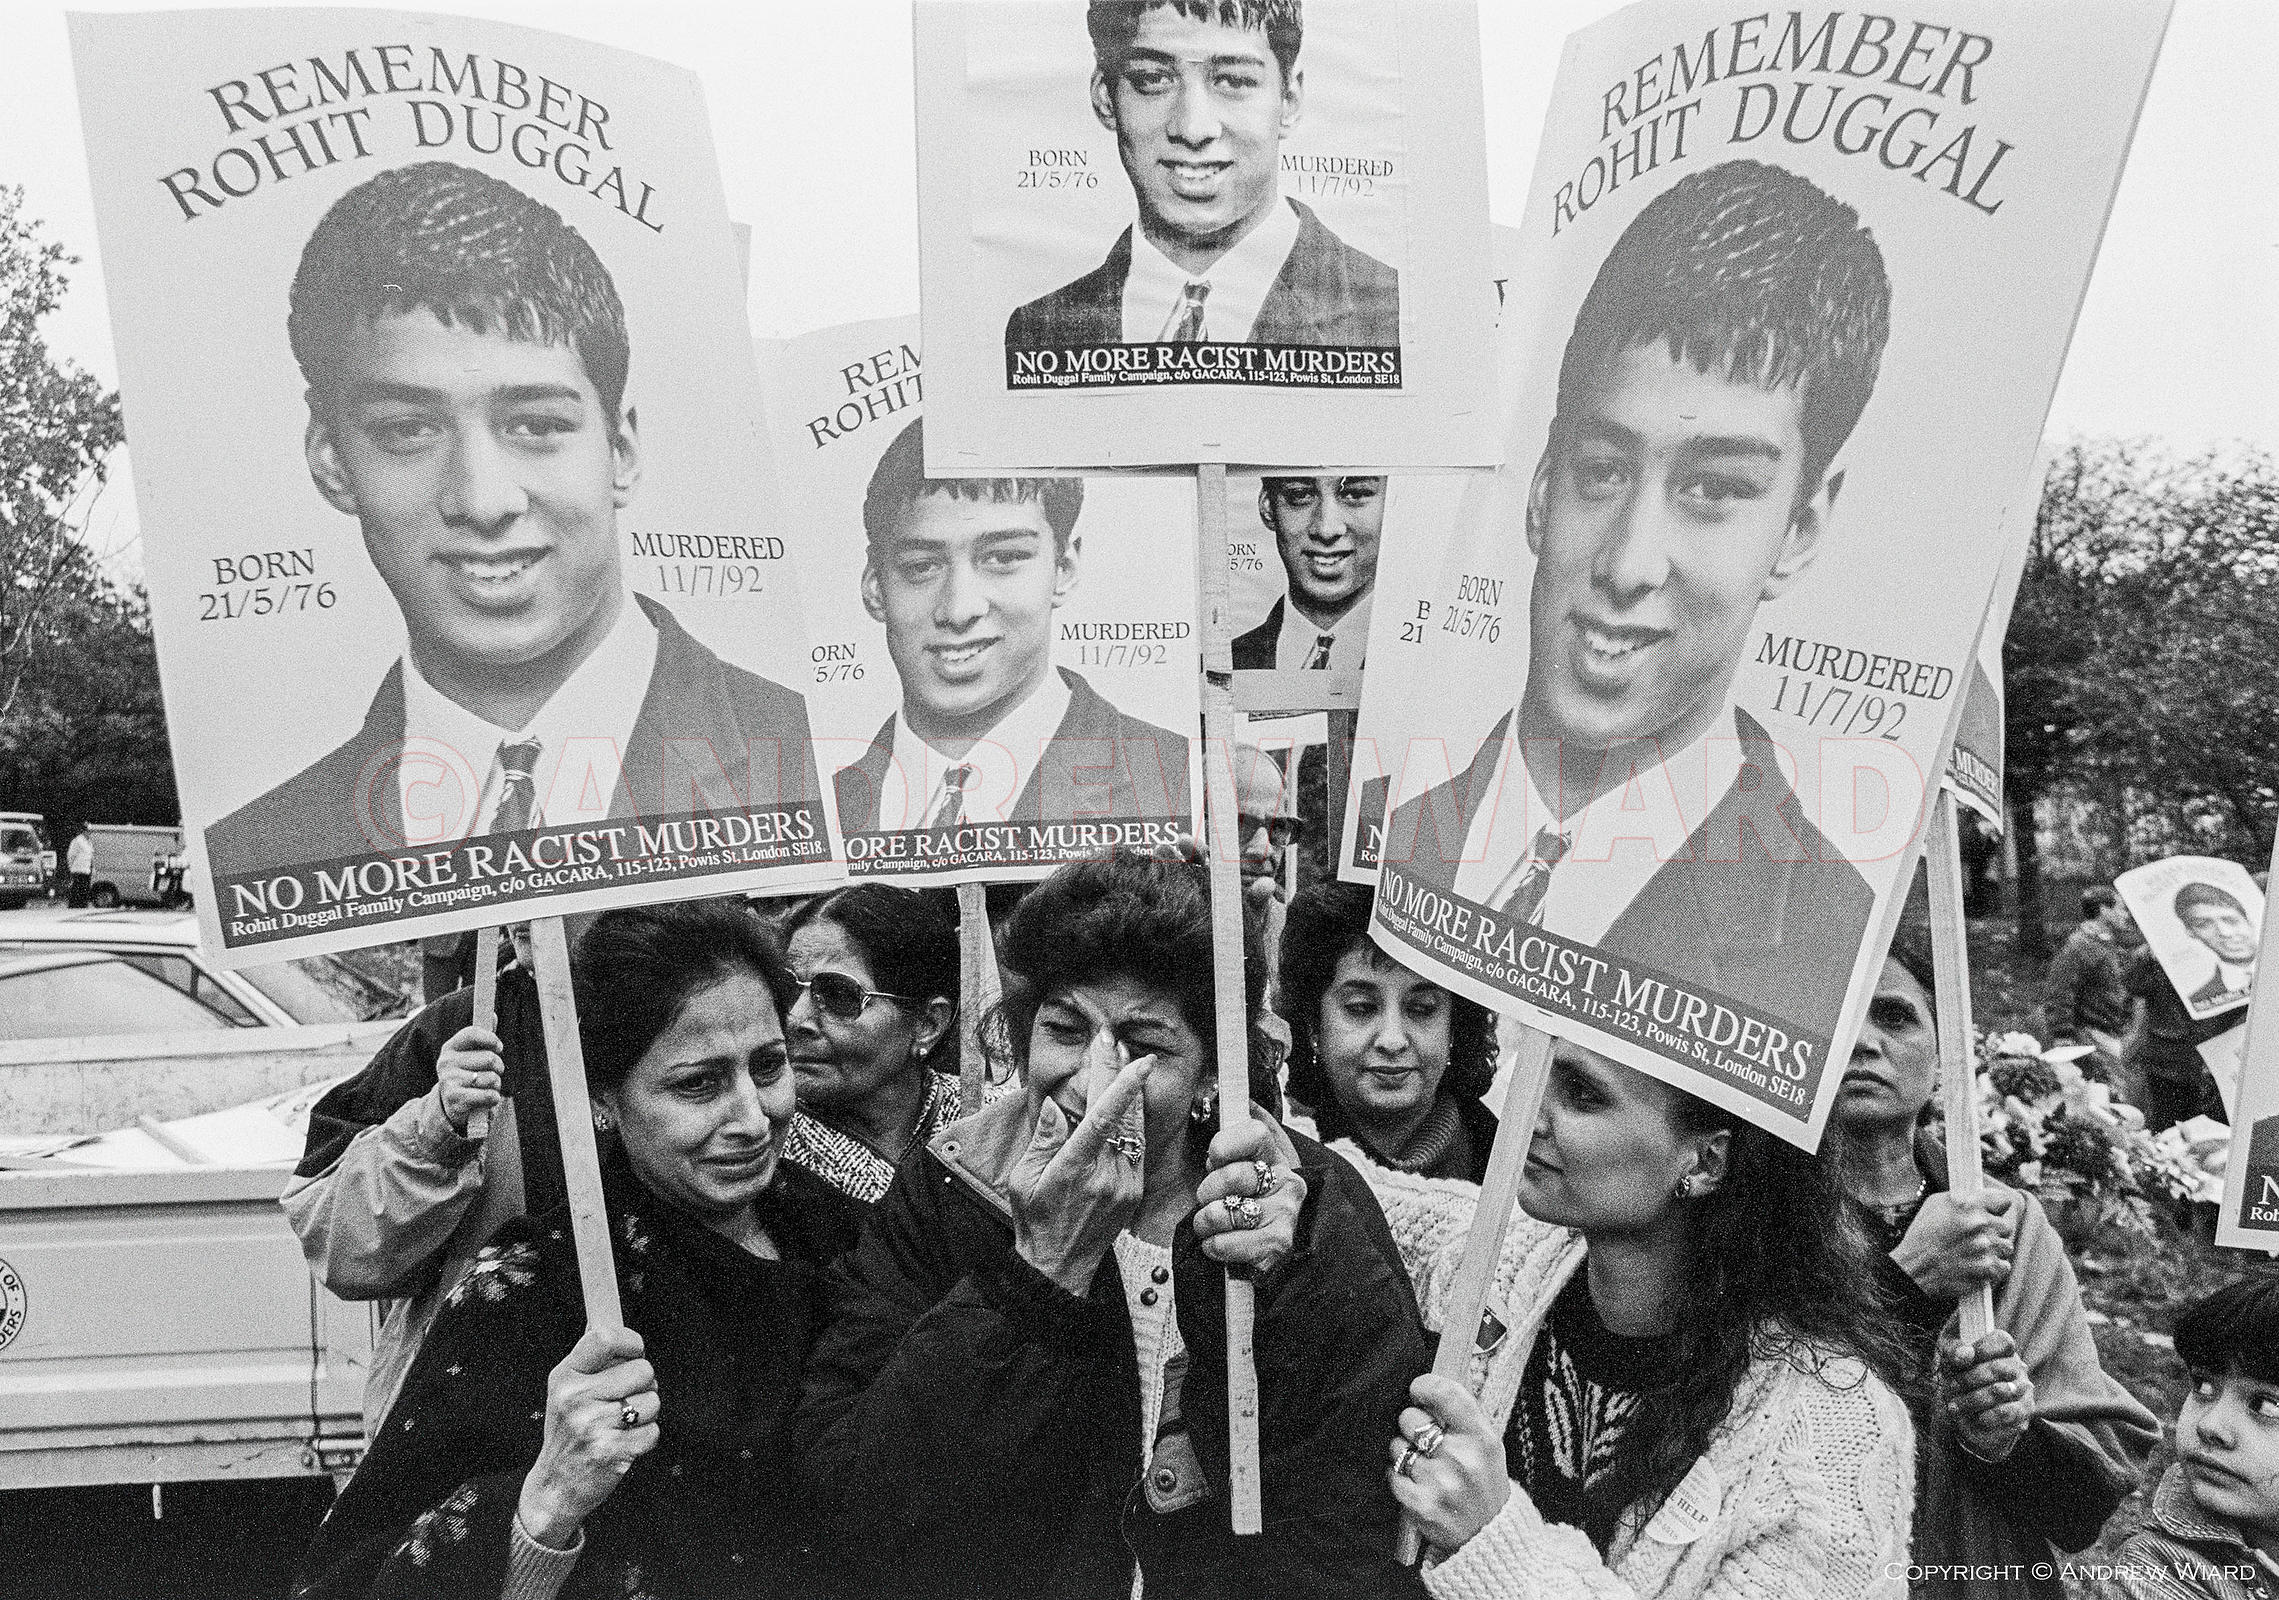 The mother of Rohit Duggal, 15 years old, murdered by a gang of white youths in Well Hall road Eltham on July 7th 1992, leads...